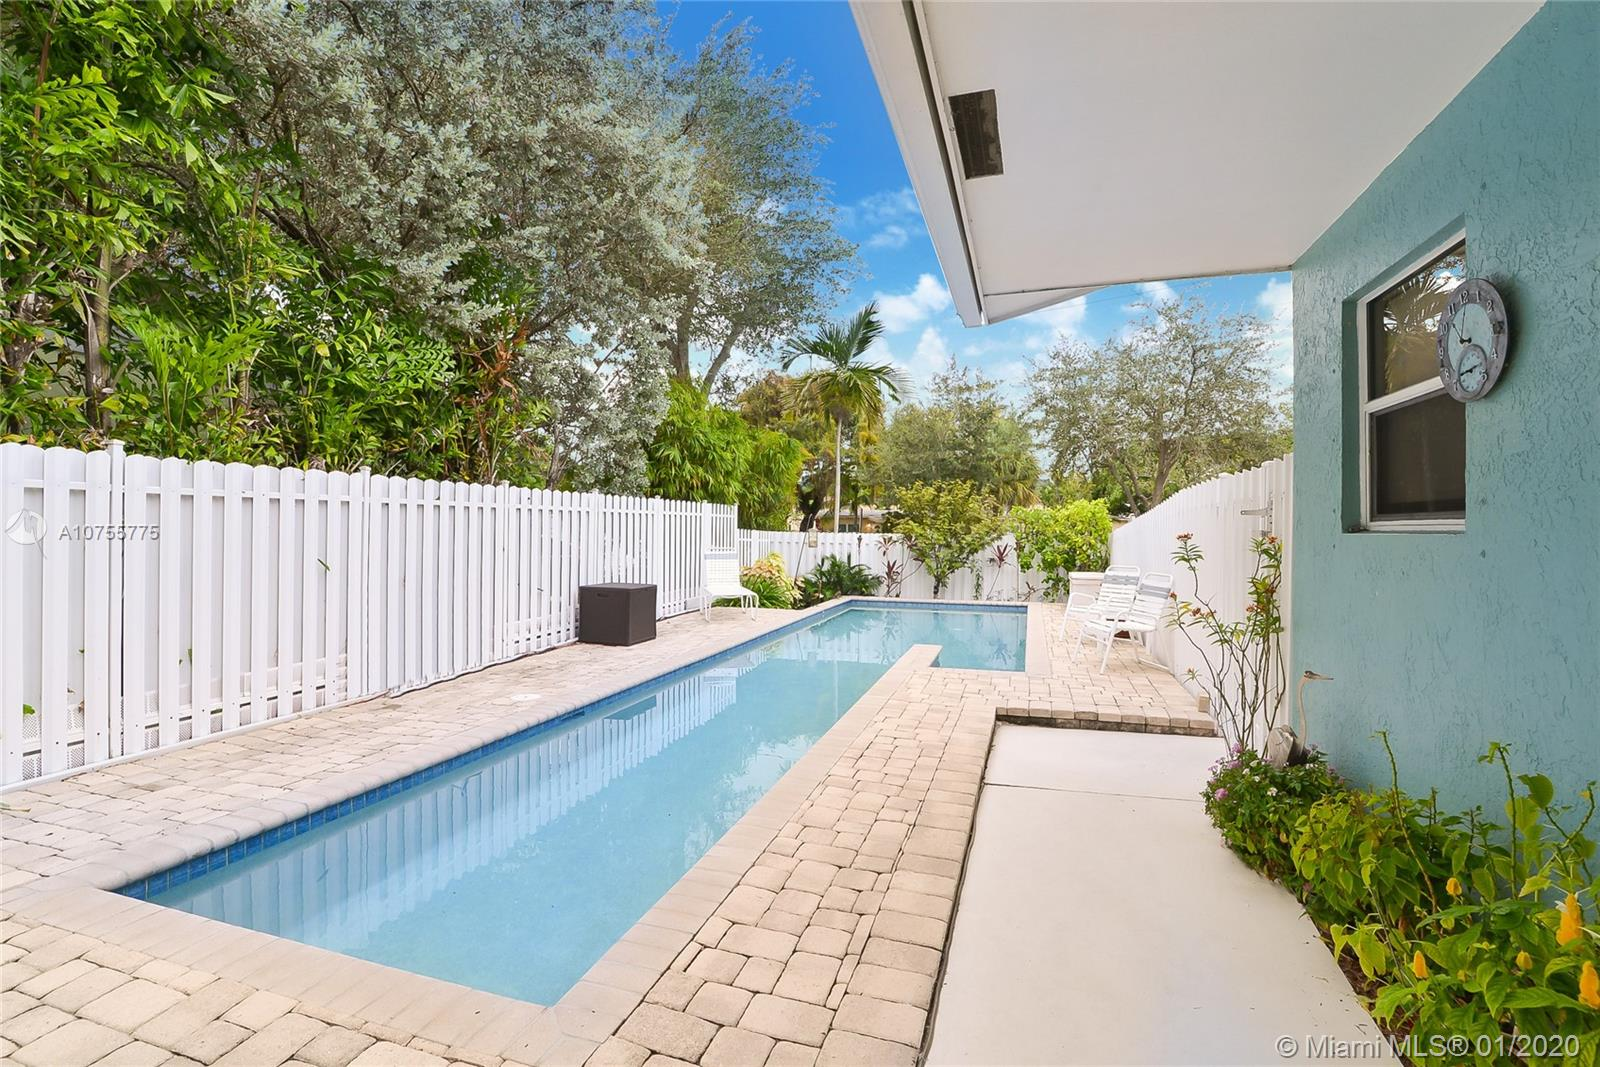 Incredible opportunity to own a Beautiful waterfront Pool Home with more than 1700 sq ft -Located in the Heart of Fort Lauderdale. Featuring 3 Bedrooms, 2 1/2 Baths.  NO HOA!!This multi-level residency boast many upgrades, including:  Impact Windows & Doors, featuring Dock-age with Power + Water Source; Tile Flooring and Carpeting in Bedrooms,  remodel Kitchen and Bathrooms. Easy access to Ocean. Expansive Terrace with Water  Views! Comfortable  Master Suite,  Walk-In Closet. 1- Oversize Car Garage plus additional Parking space. Completely Fenced and equipped with a wireless security system. Townhouse is not part of an HOA and has no fees.  Close to Shopping and Restaurants.